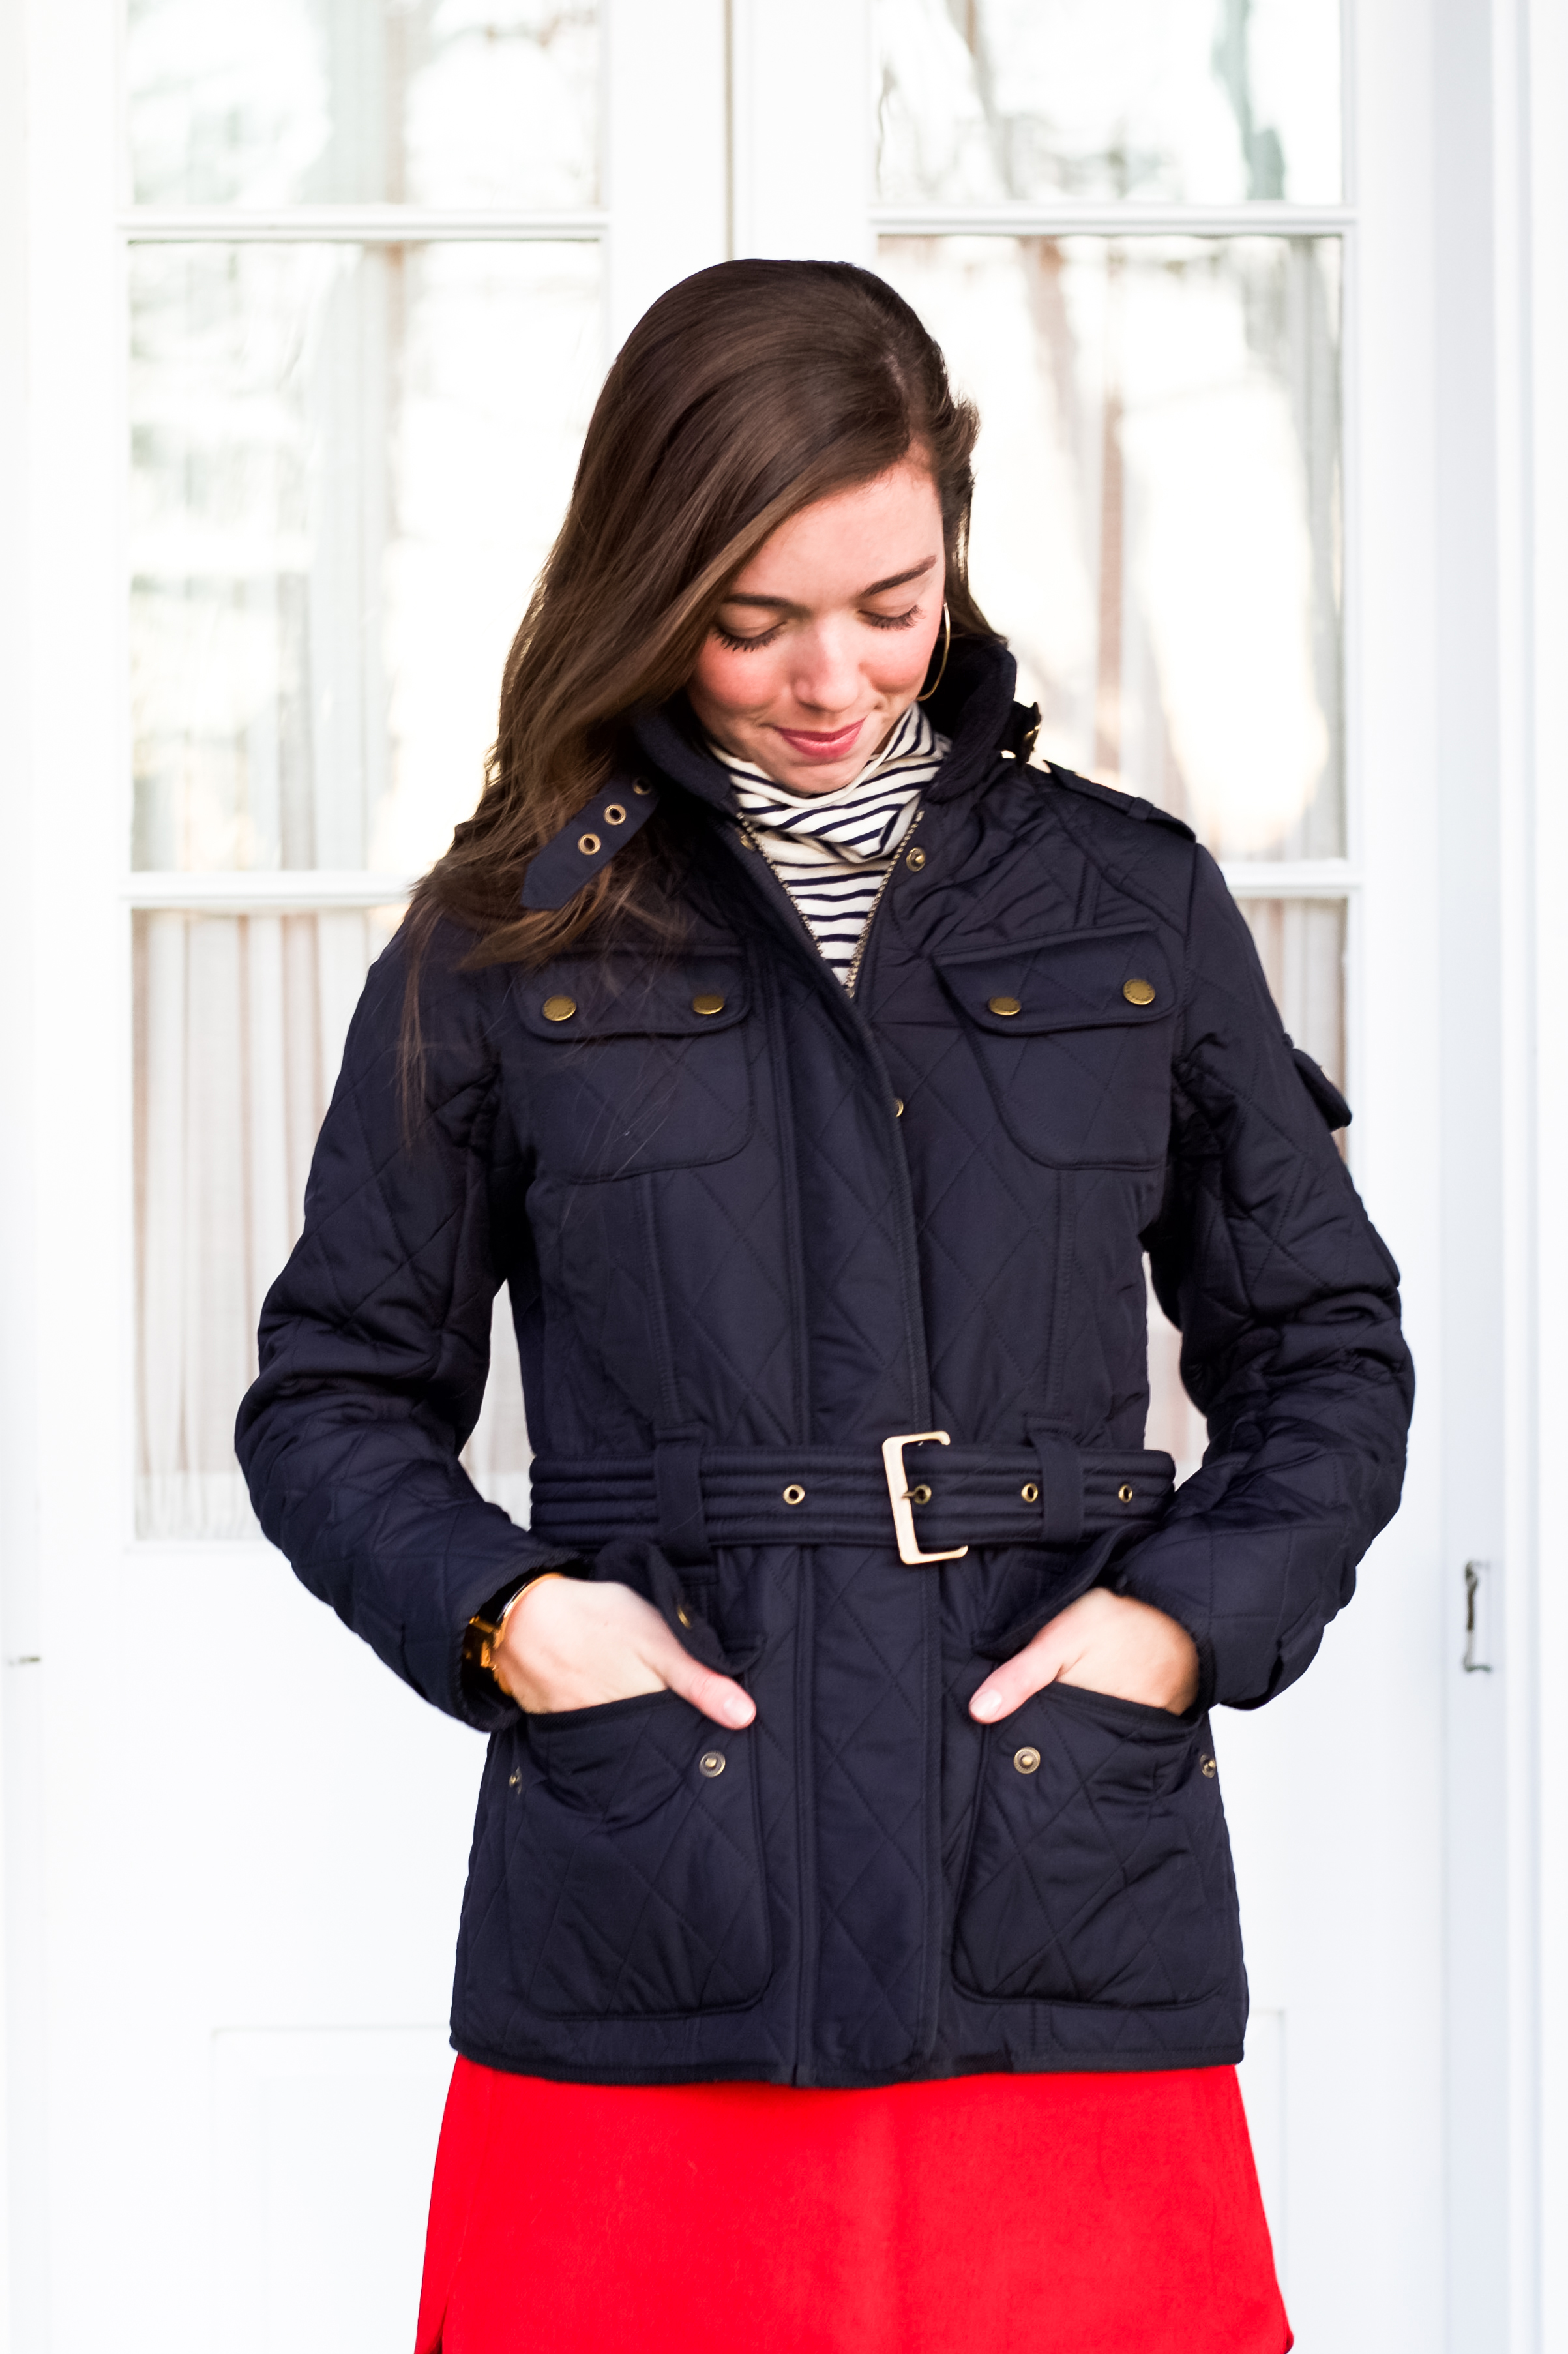 fashion blogger lcb style greenbrier resort christmas barbour international jacket (24 of 32).jpg